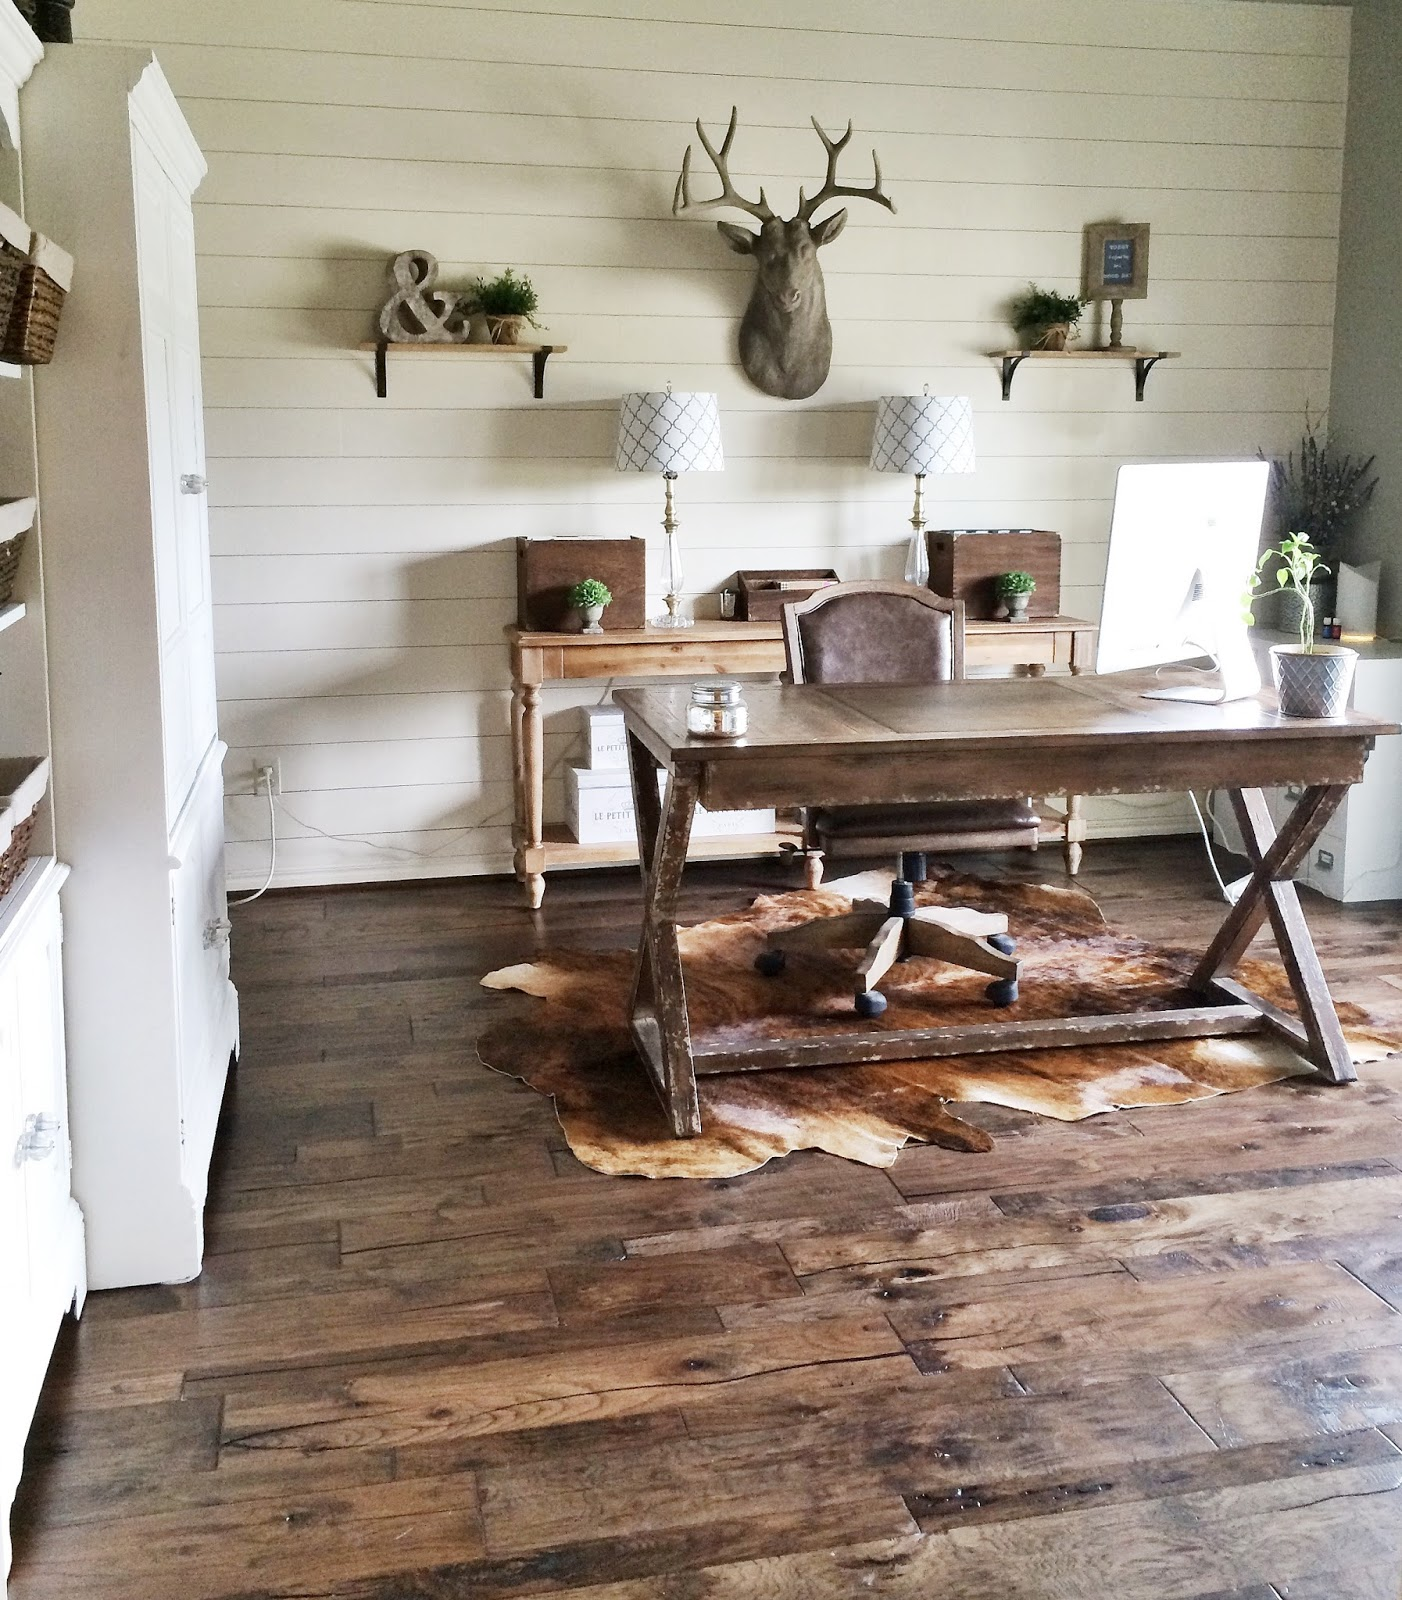 Small Full Bathroom Floor Plans Remodelaholic How To Install A Shiplap Wall Rustic